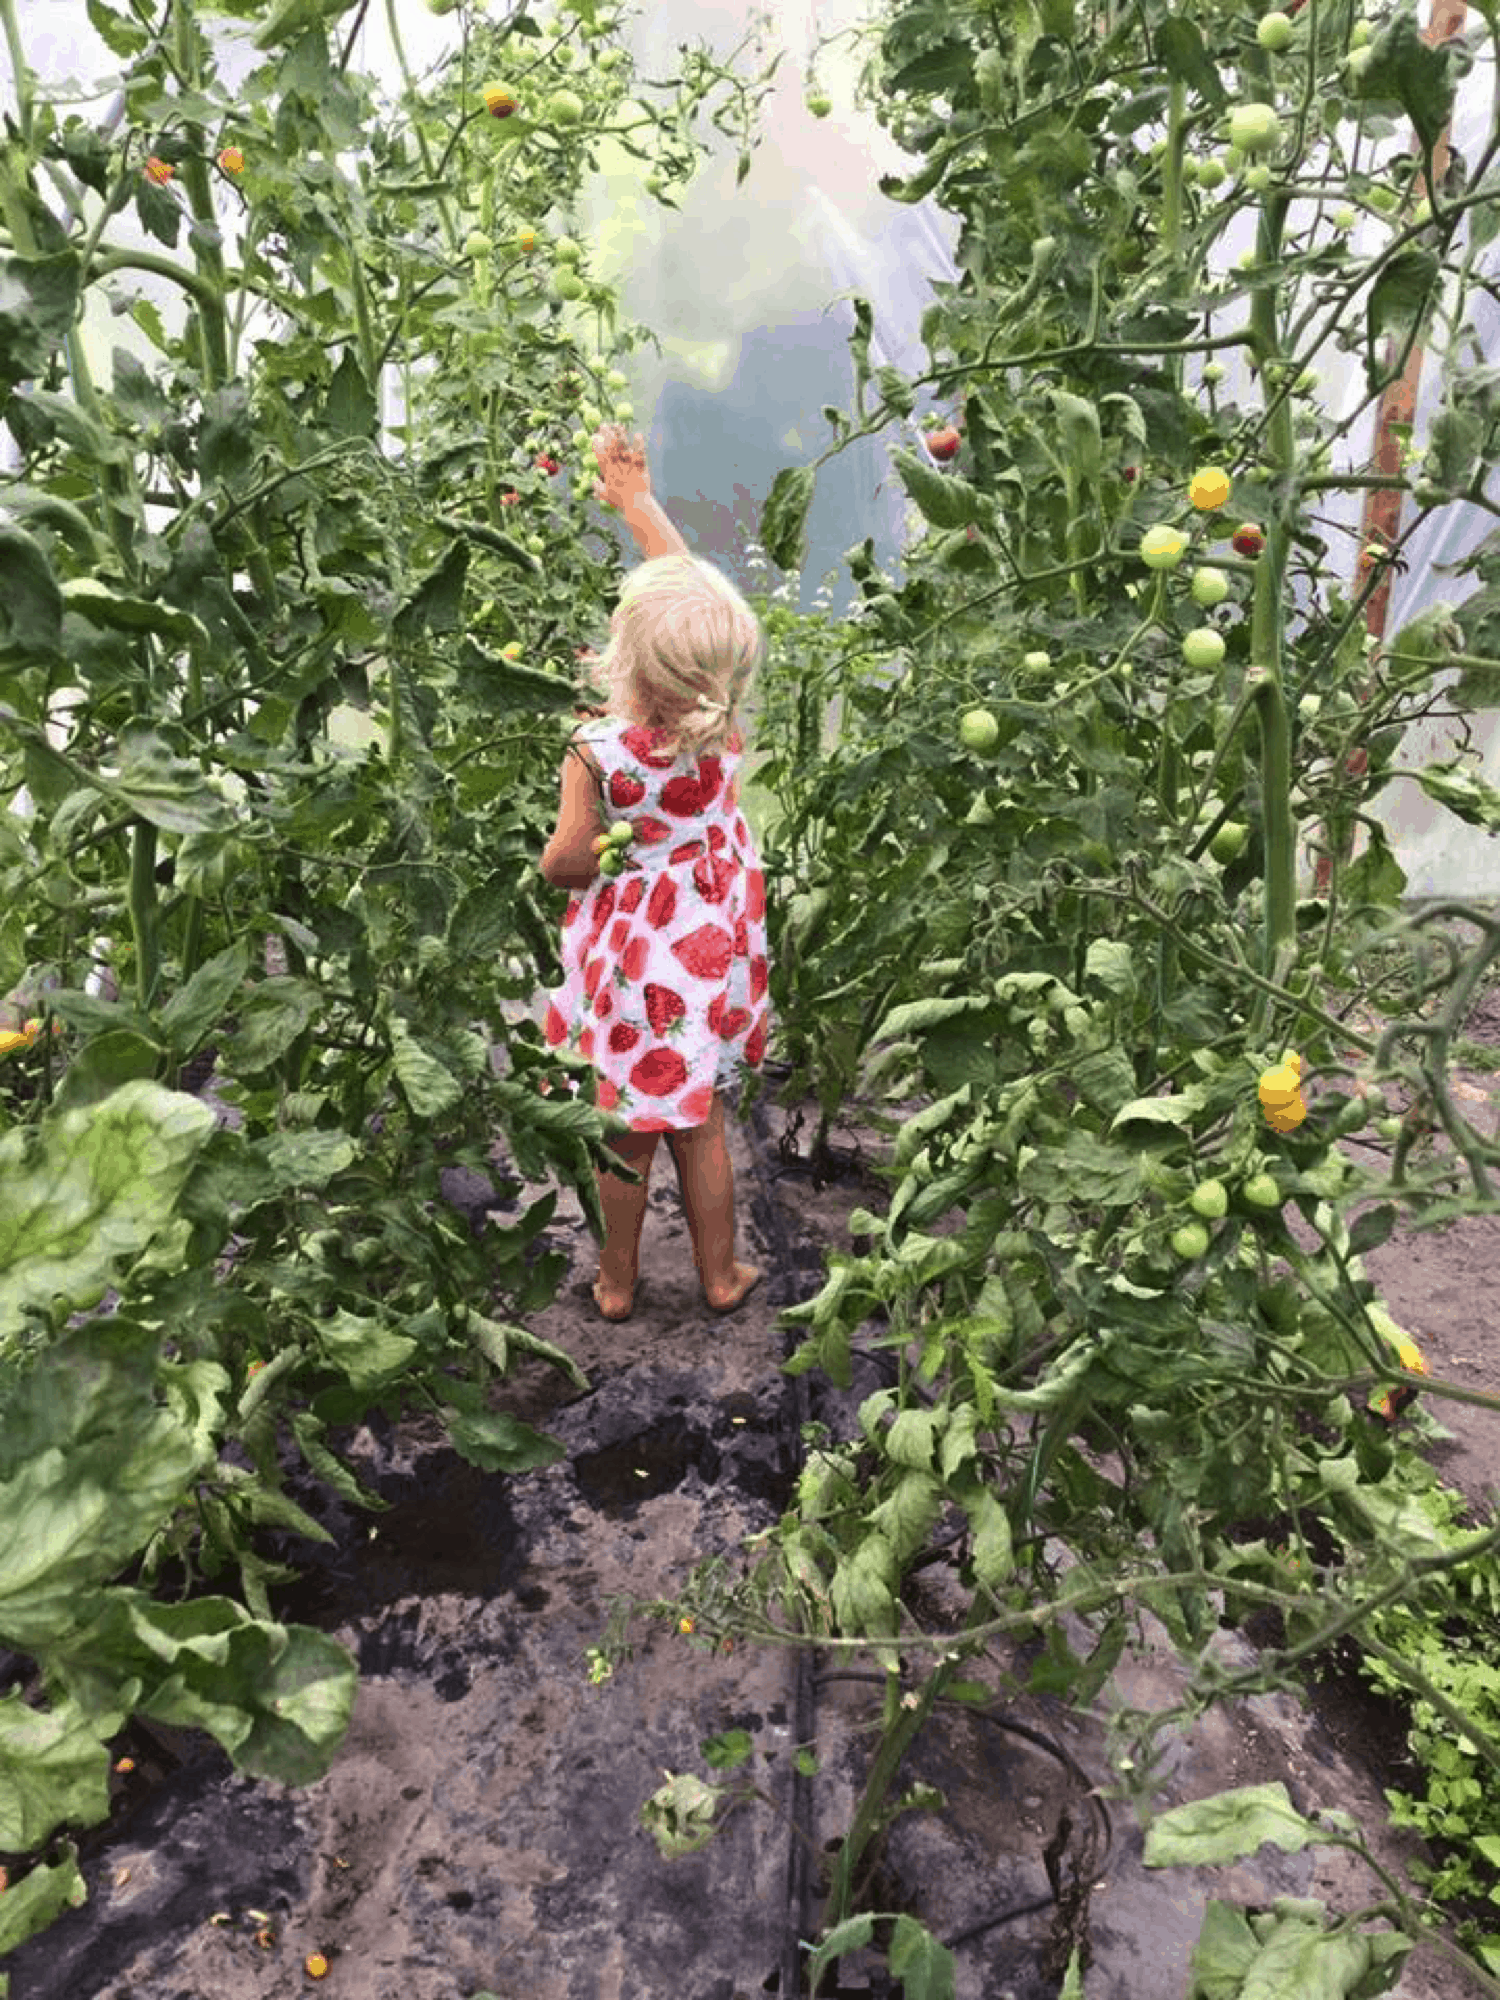 Person picking tomatoes.